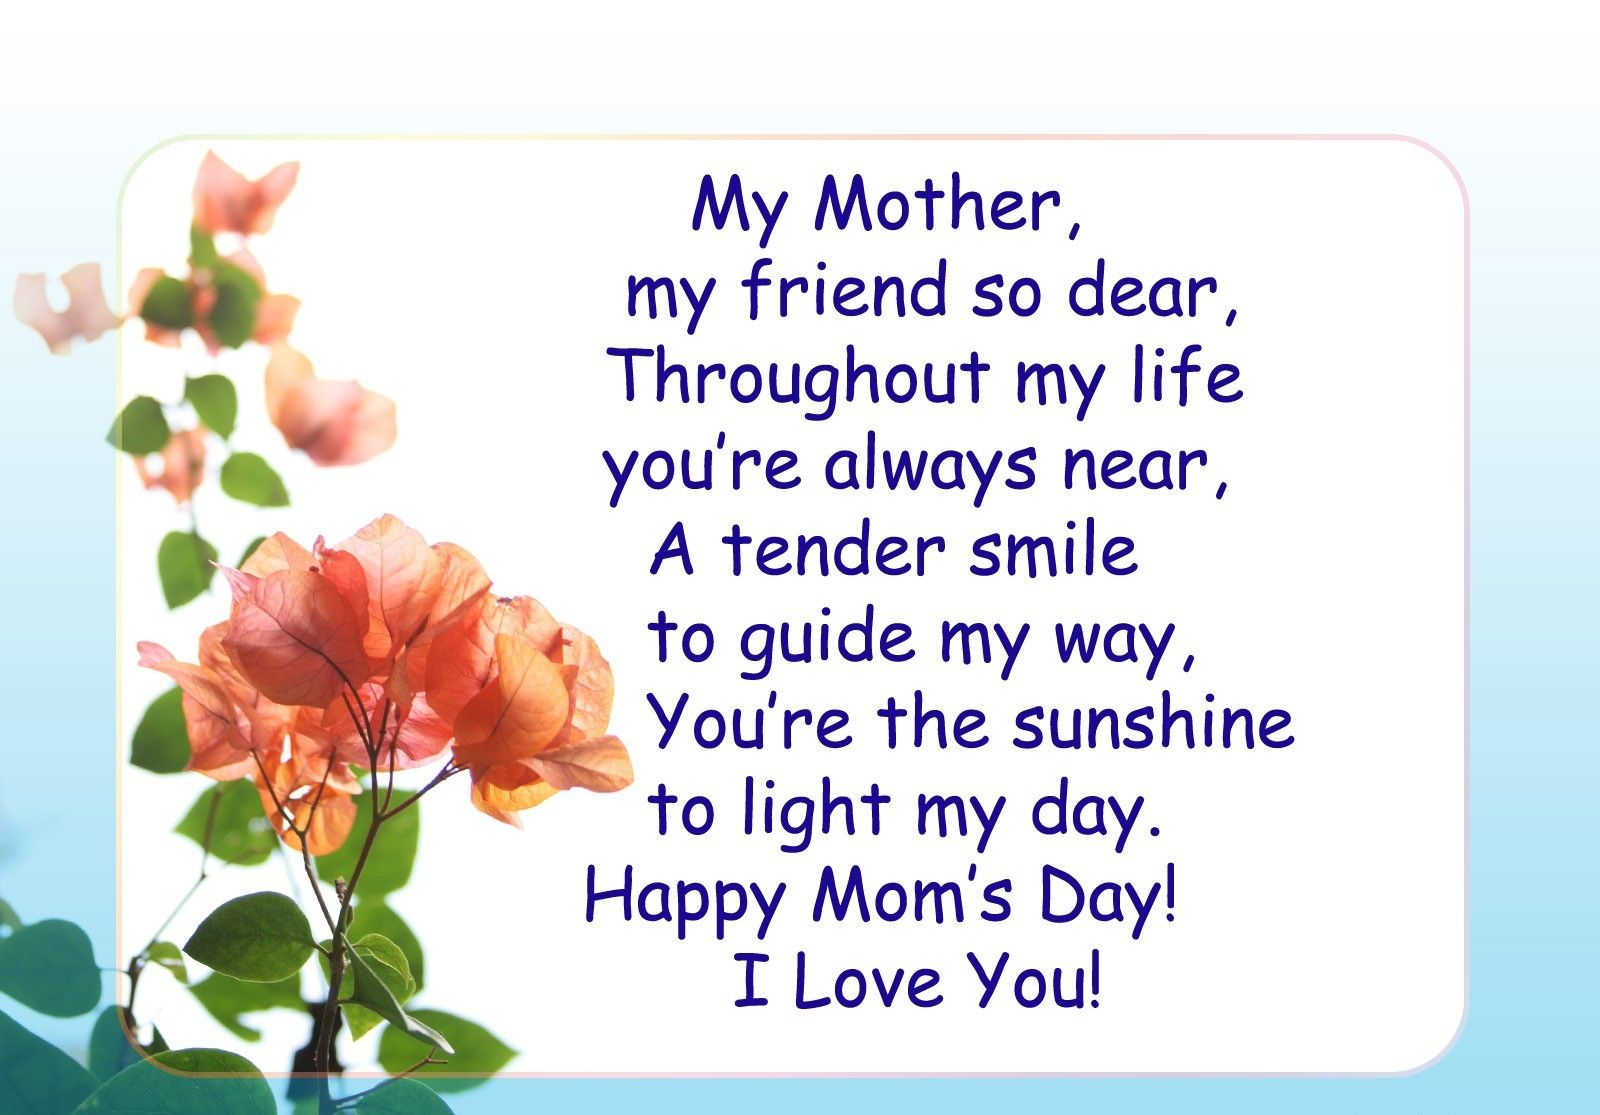 101 Best Mother S Day Quotes Wishes Images For Moms Happy Mother Day Quotes Happy Mothers Day Images Birthday Wishes For Mom